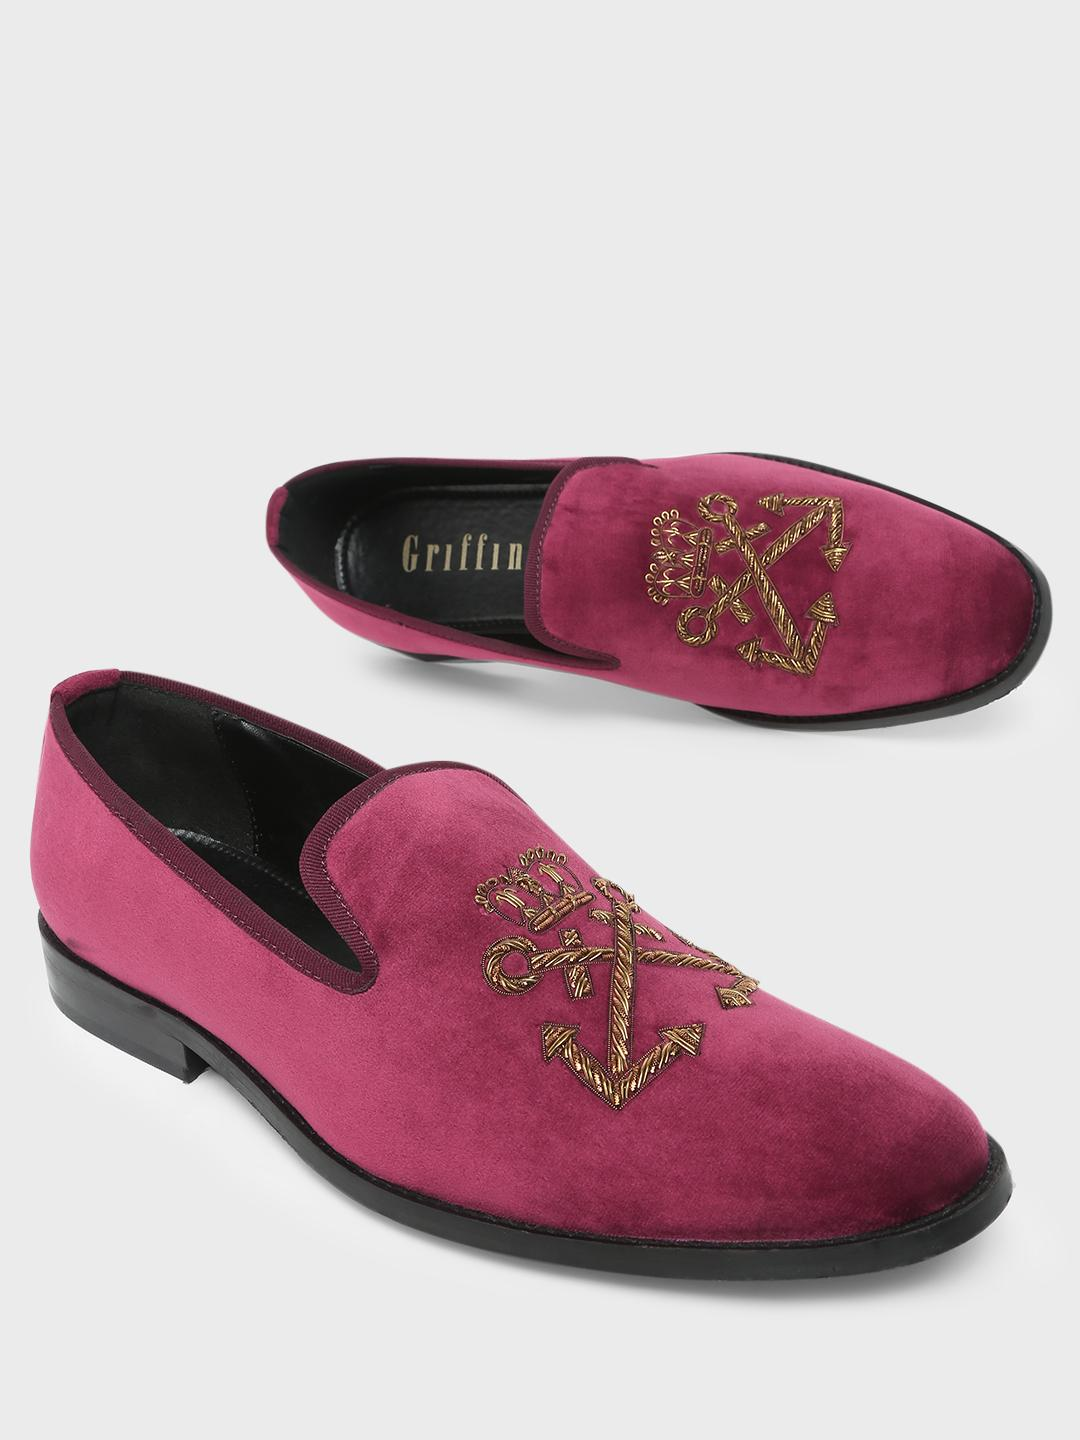 Griffin Maroon Embroidery Casual Loafers 1